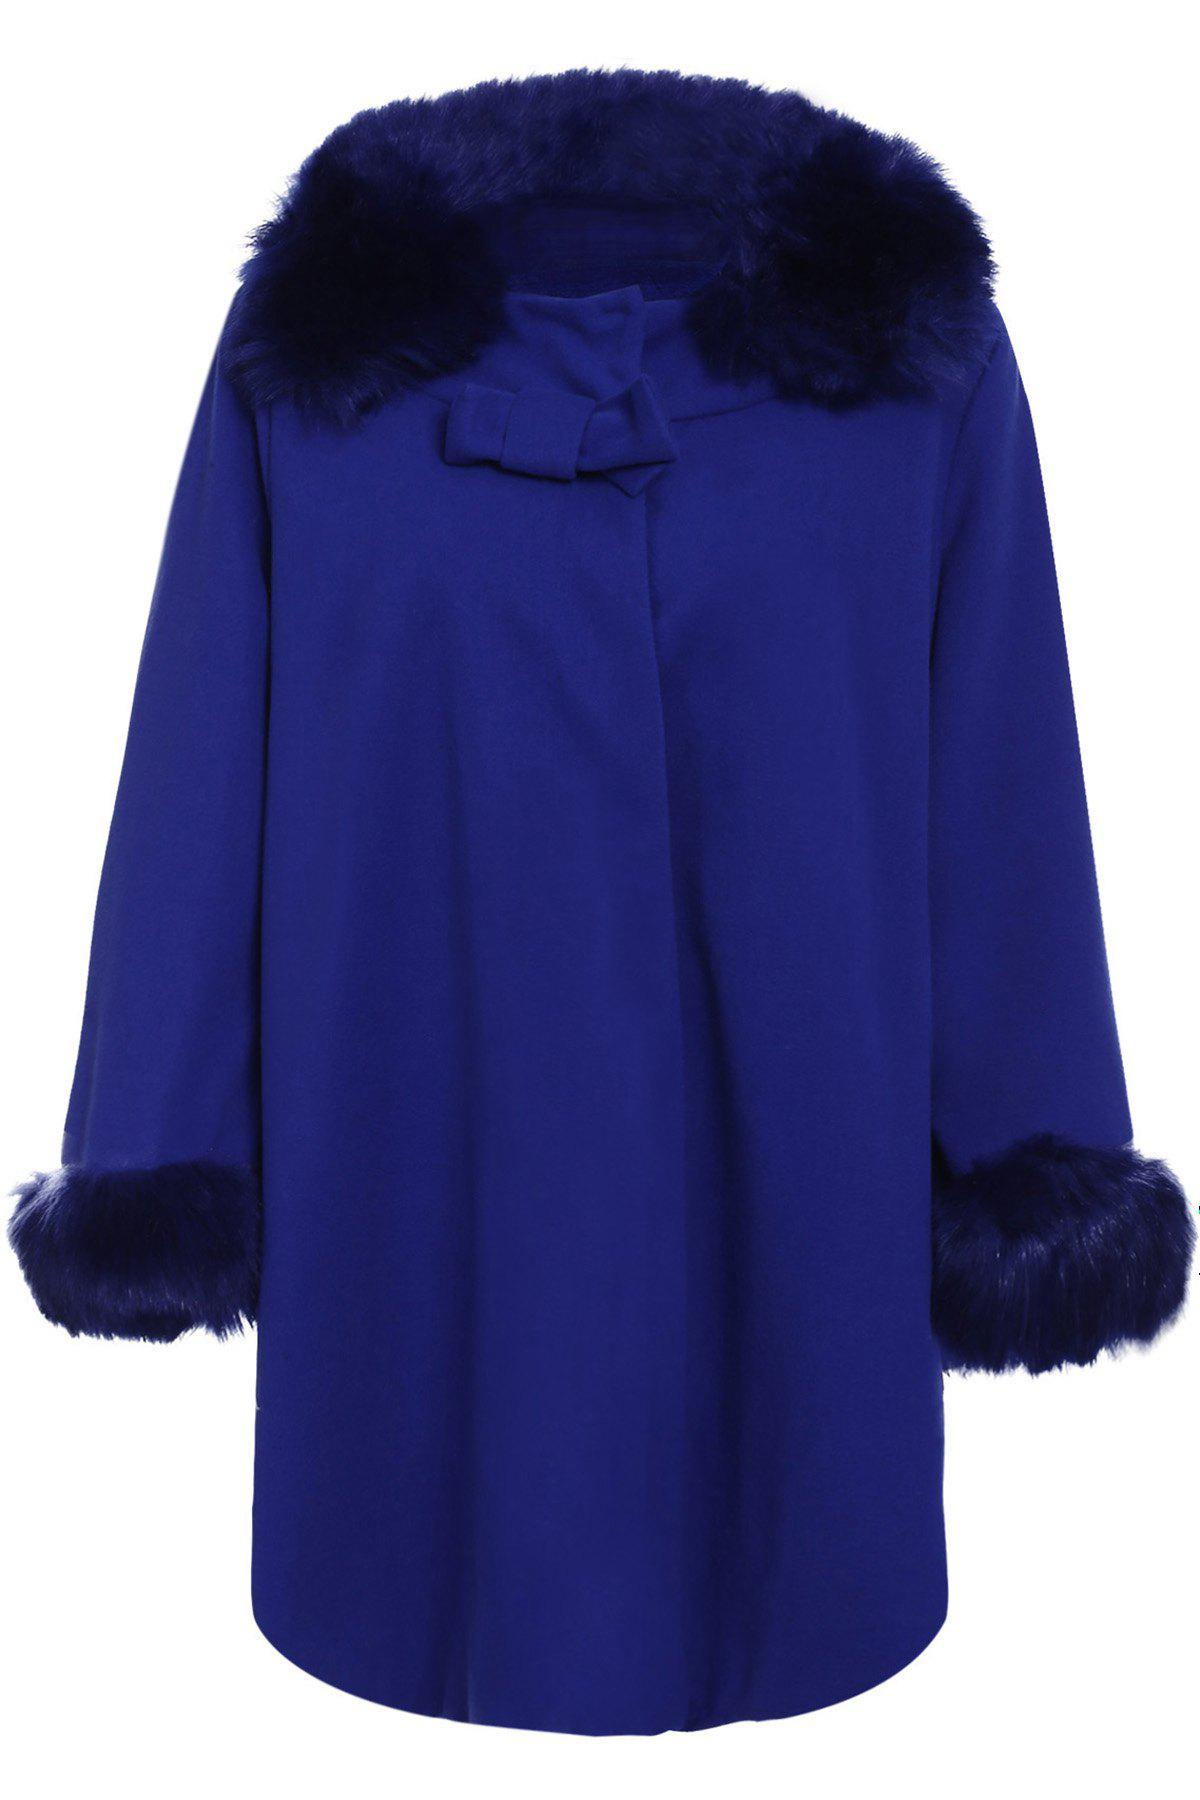 Chic 3/4 Sleeve Turn-Down Neck Bowknot Design Women's Coat - SAPPHIRE BLUE 4XL